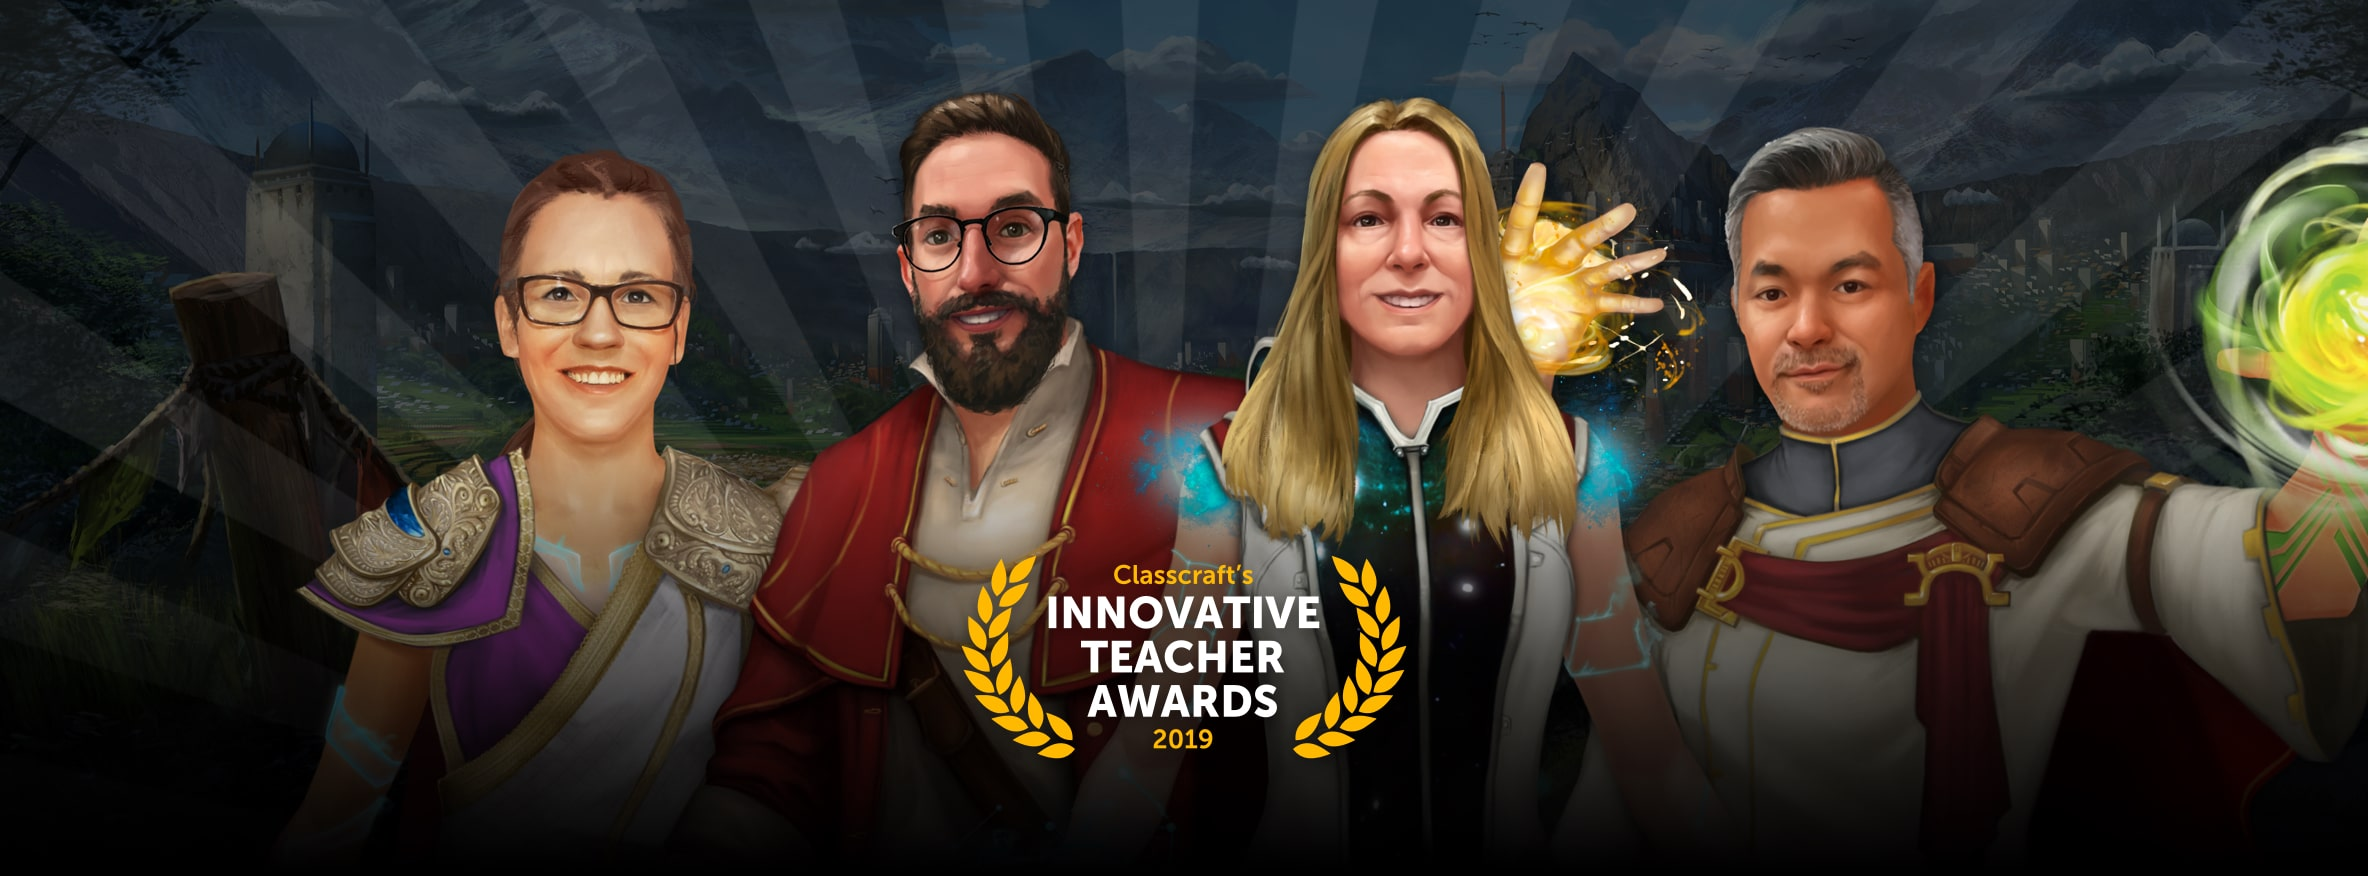 Classcraft's Innovative Teachers of the Year 2019